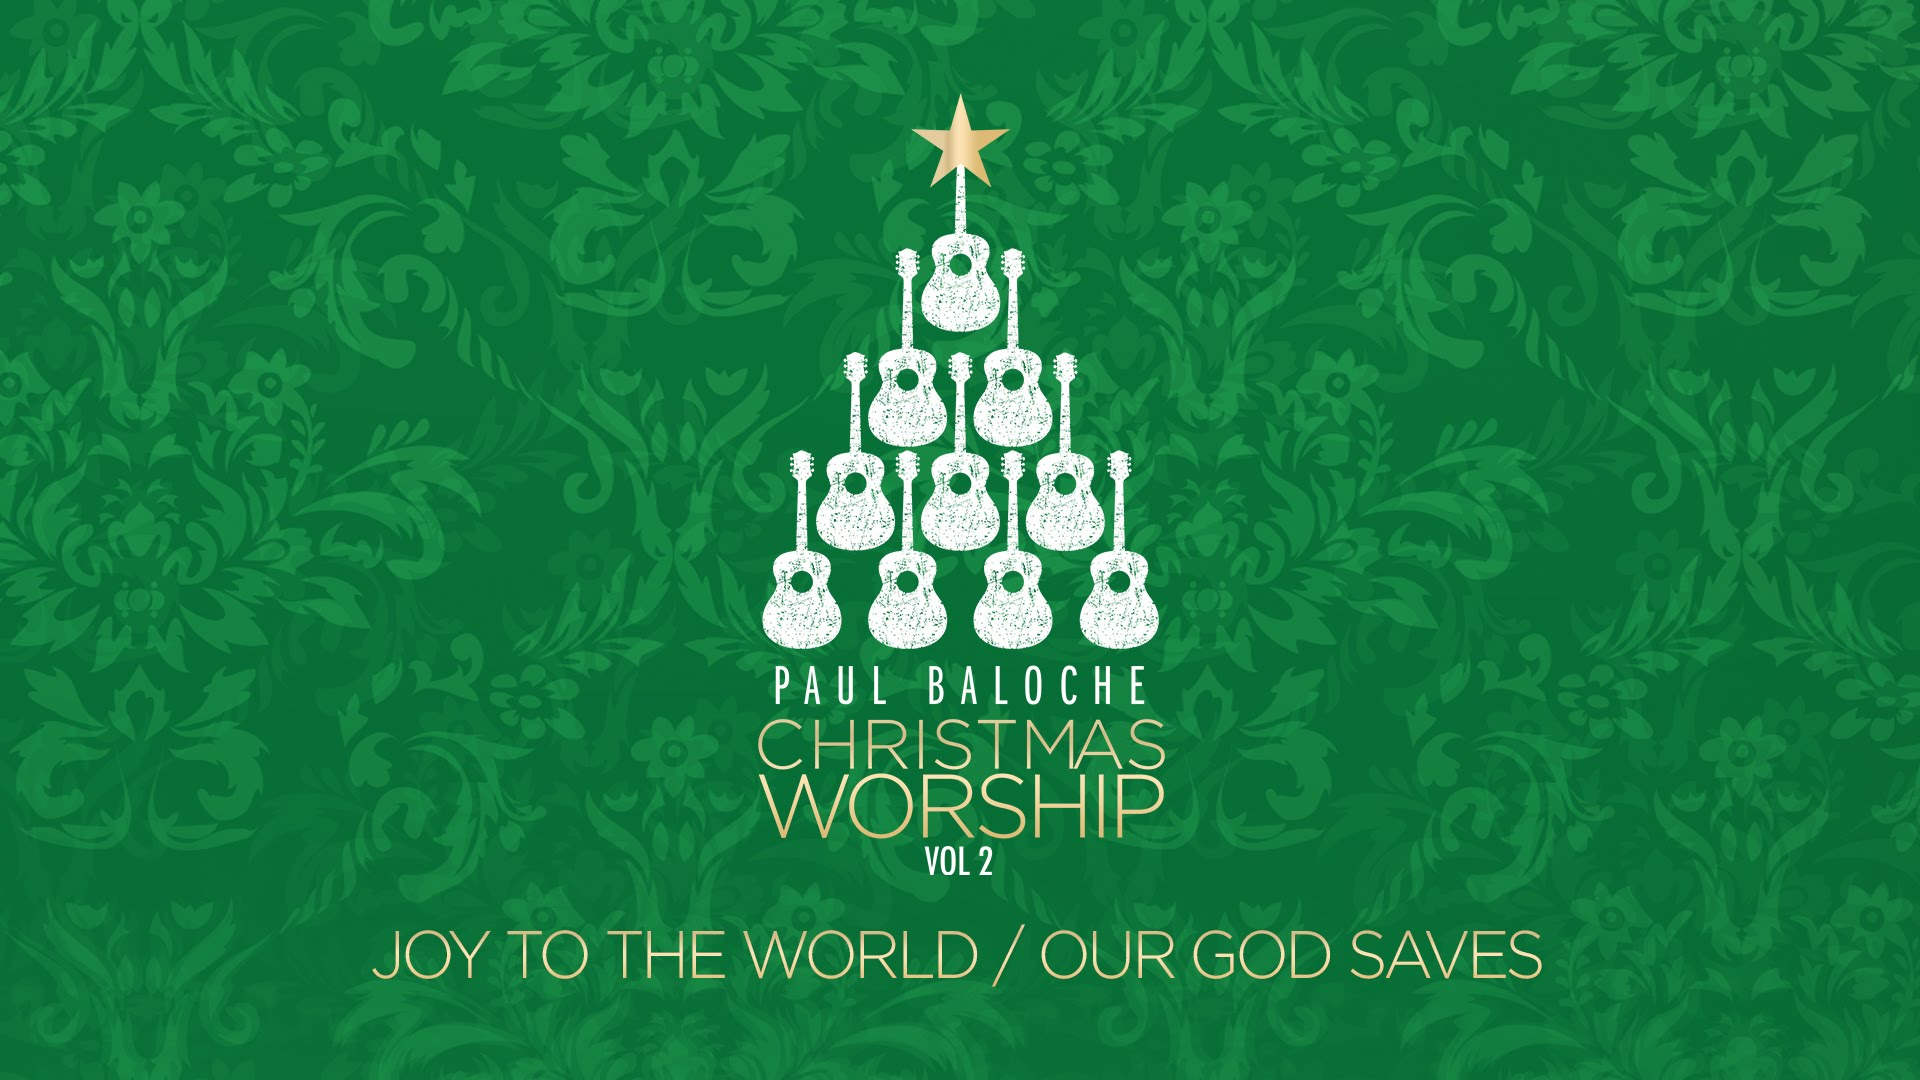 Joy To The World/Our God Saves door Paul Baloche 3